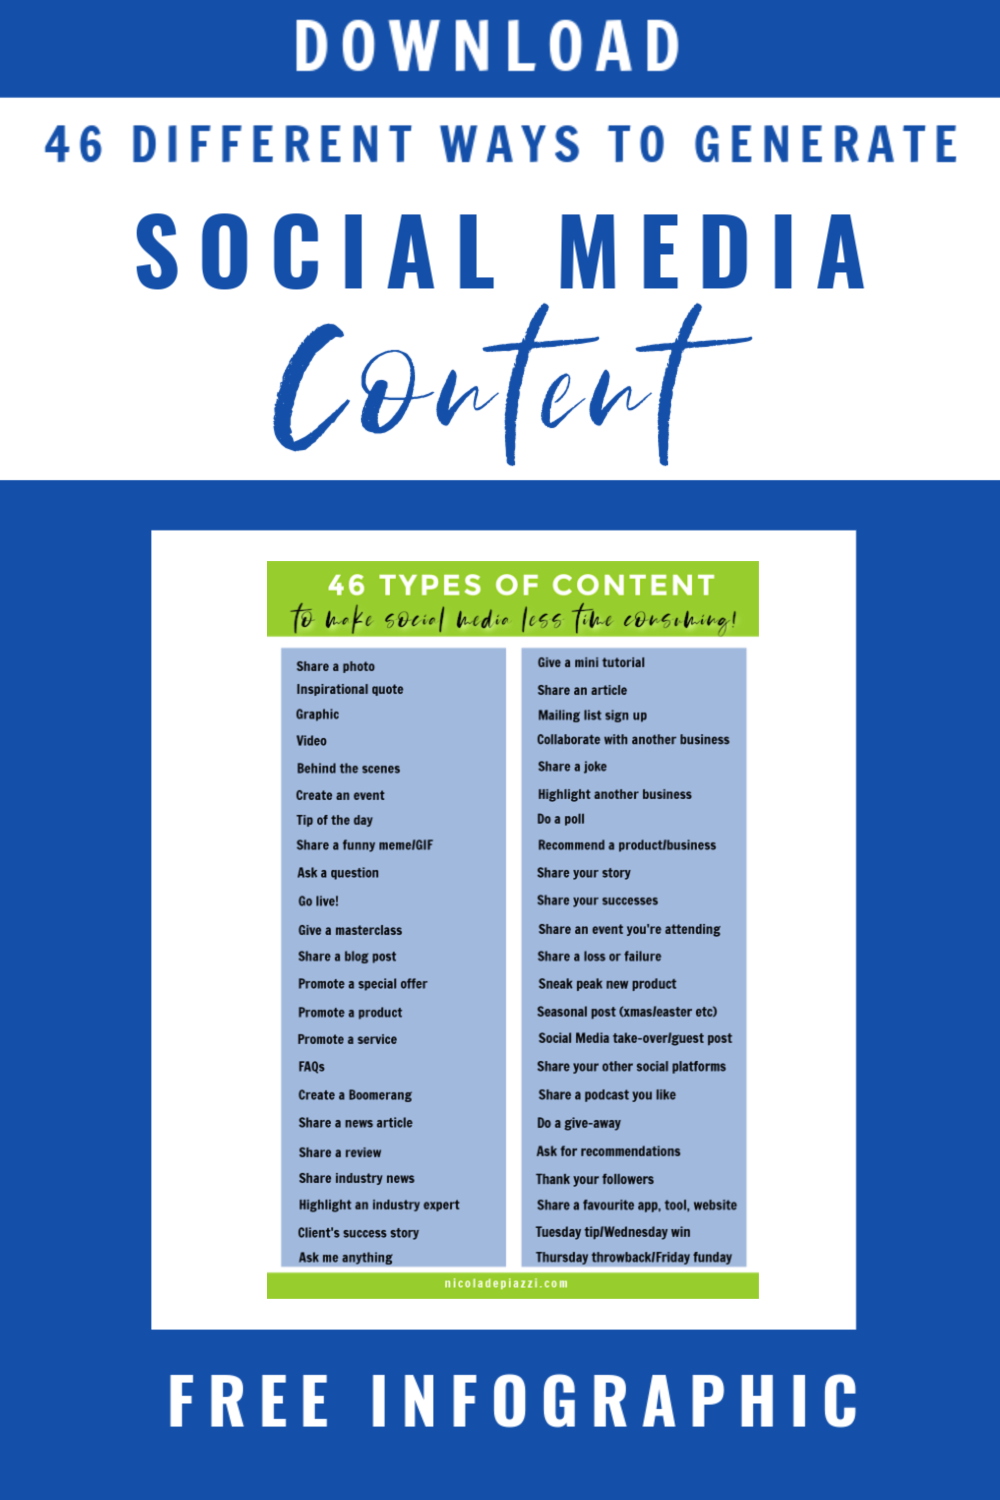 46 ways to generate content